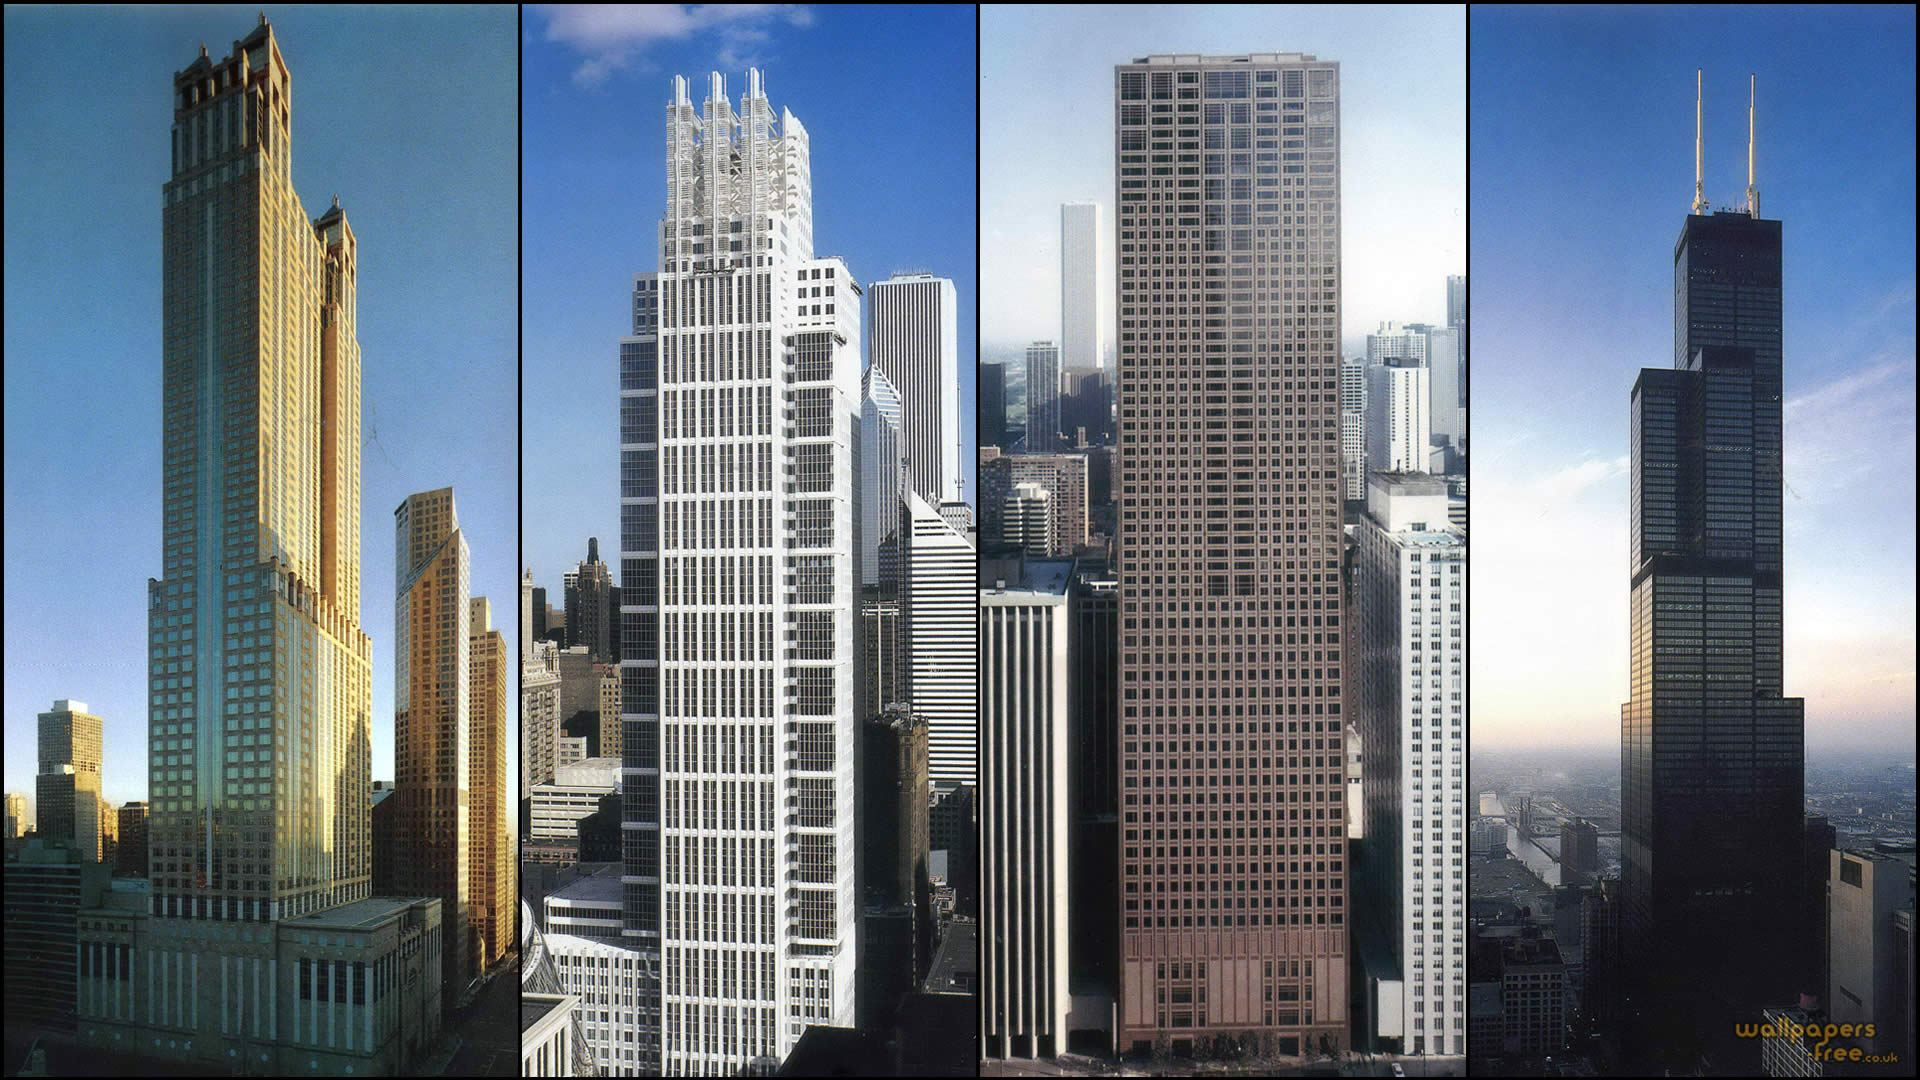 Skyscrapers in Chicago Pictures Tallest Chicago Skyscrapers